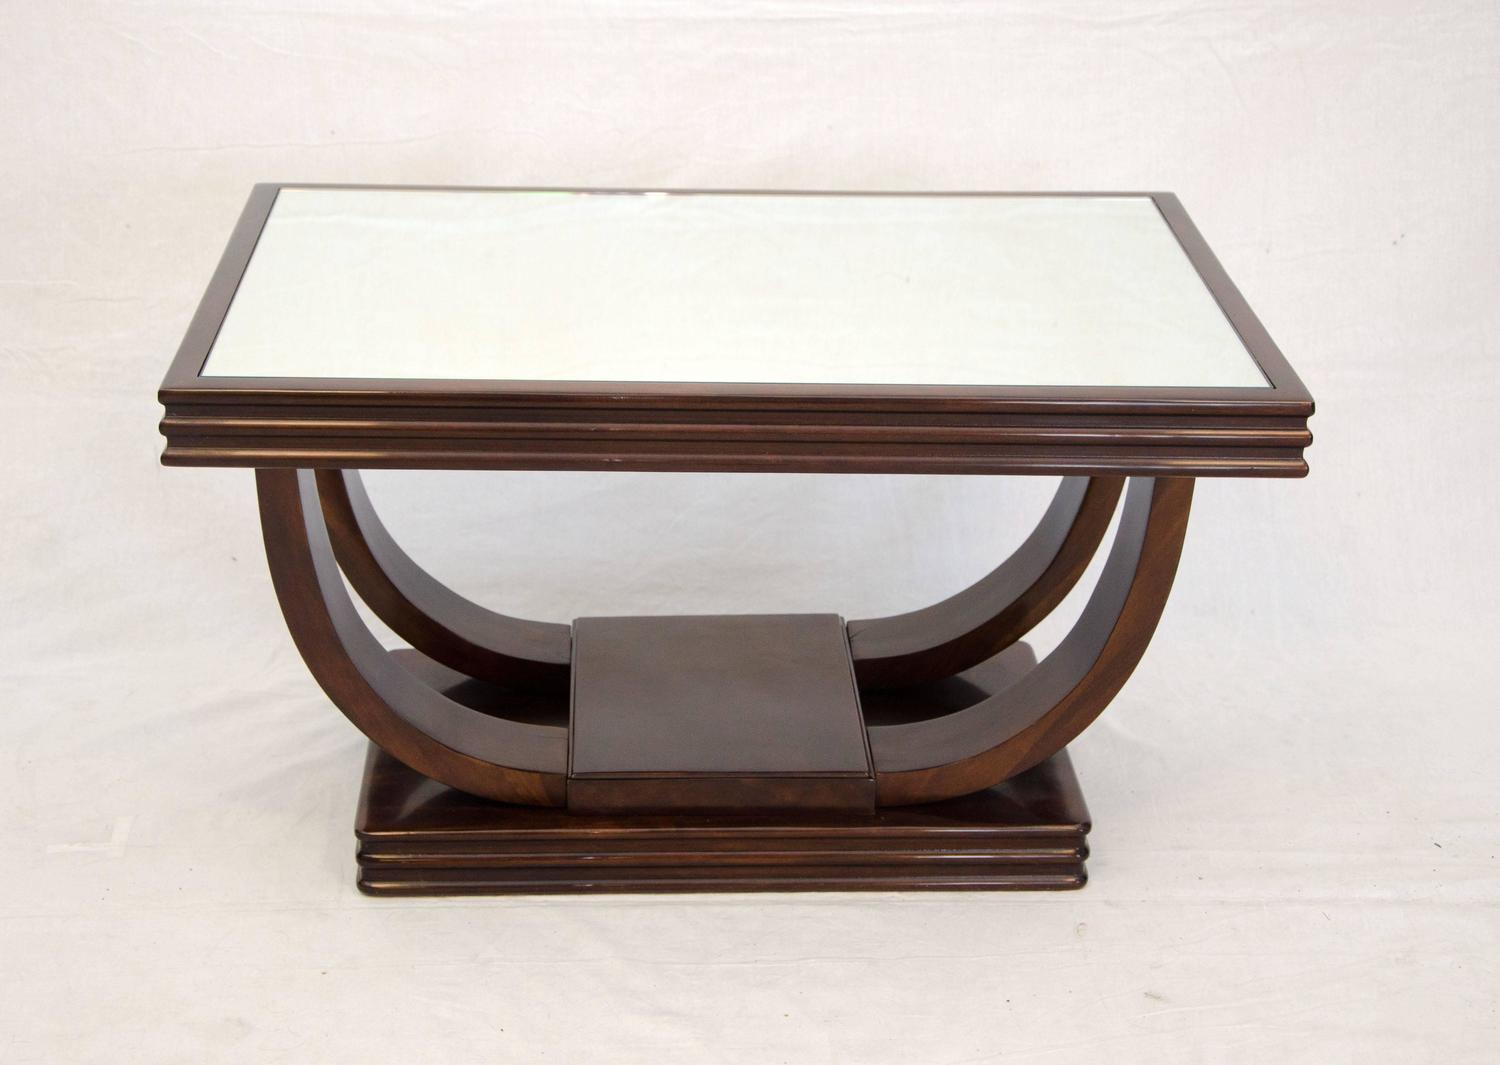 Art deco cocktail or coffee table mirror top for sale at for Hoop coffee table